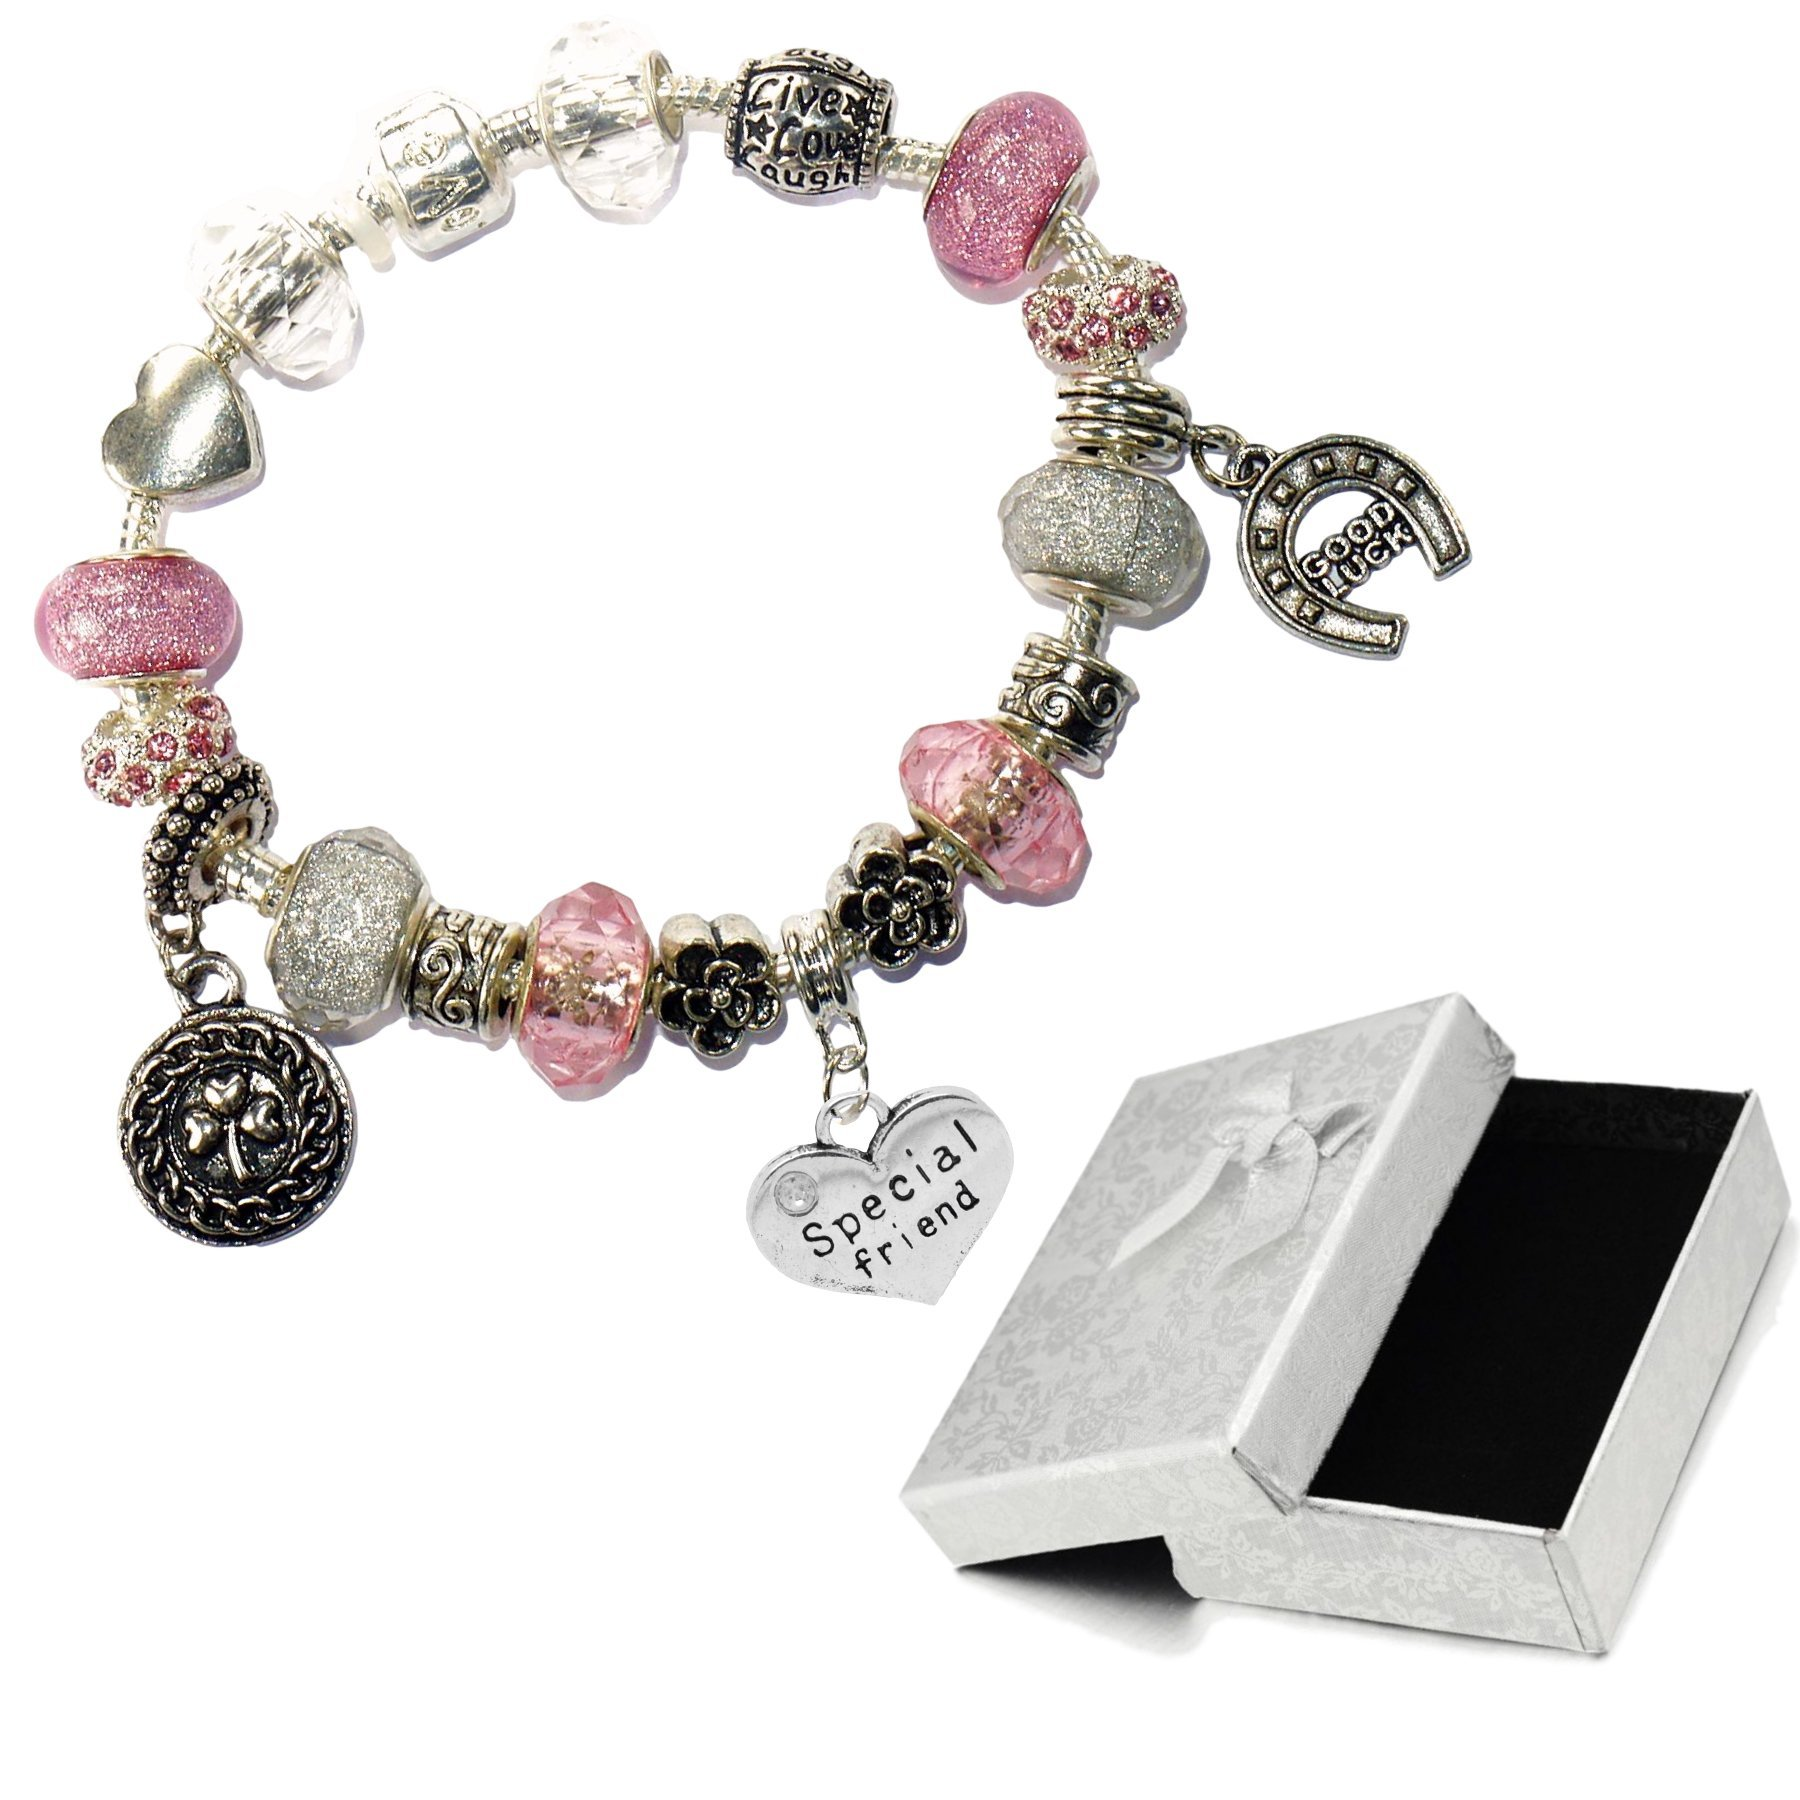 Charm Buddy Special Friend Pink Silver Crystal Good Luck Pandora Style Bracelet With Charms Gift Box